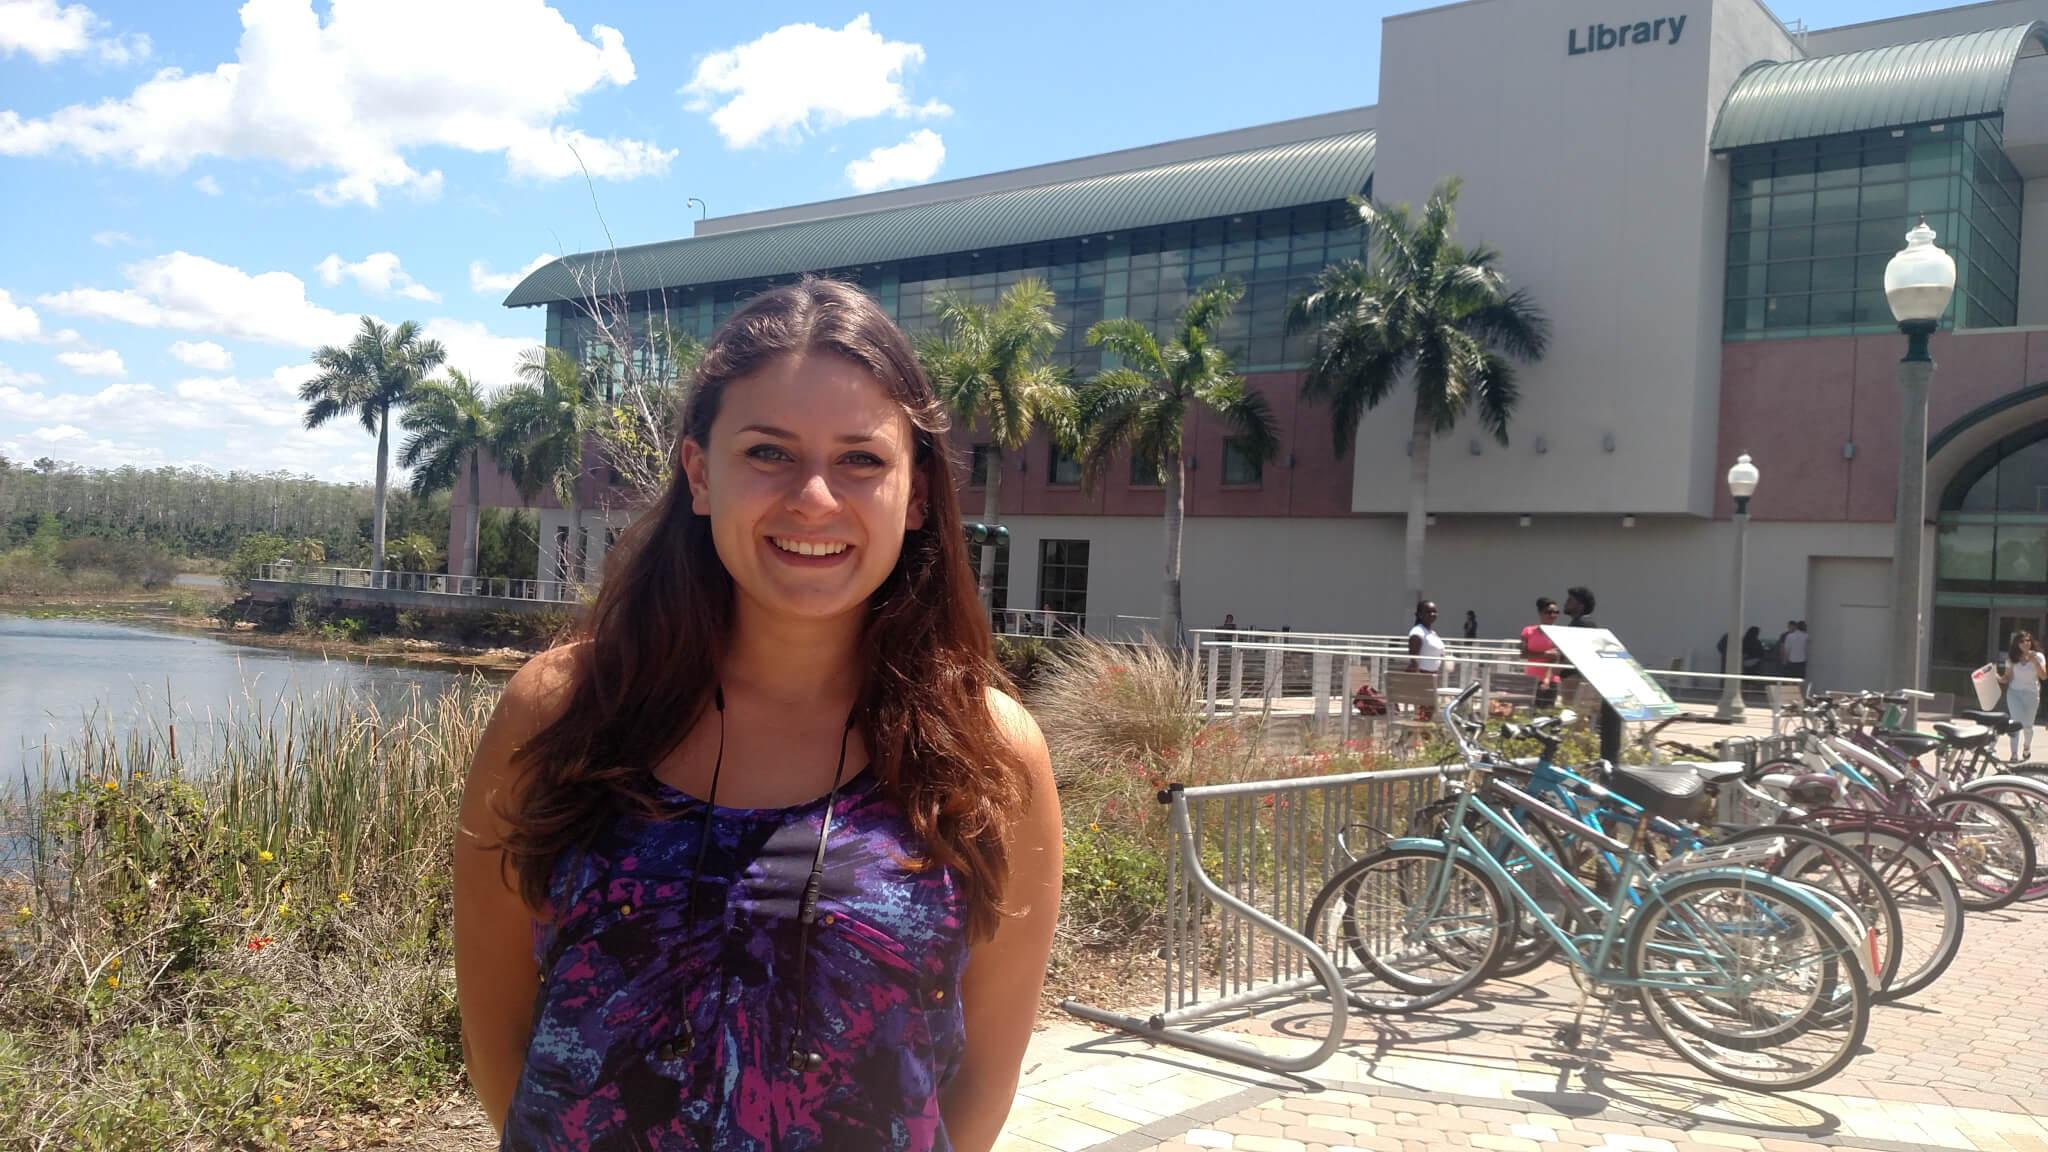 FGCU freshman learns ways to become more involved and still pass exams